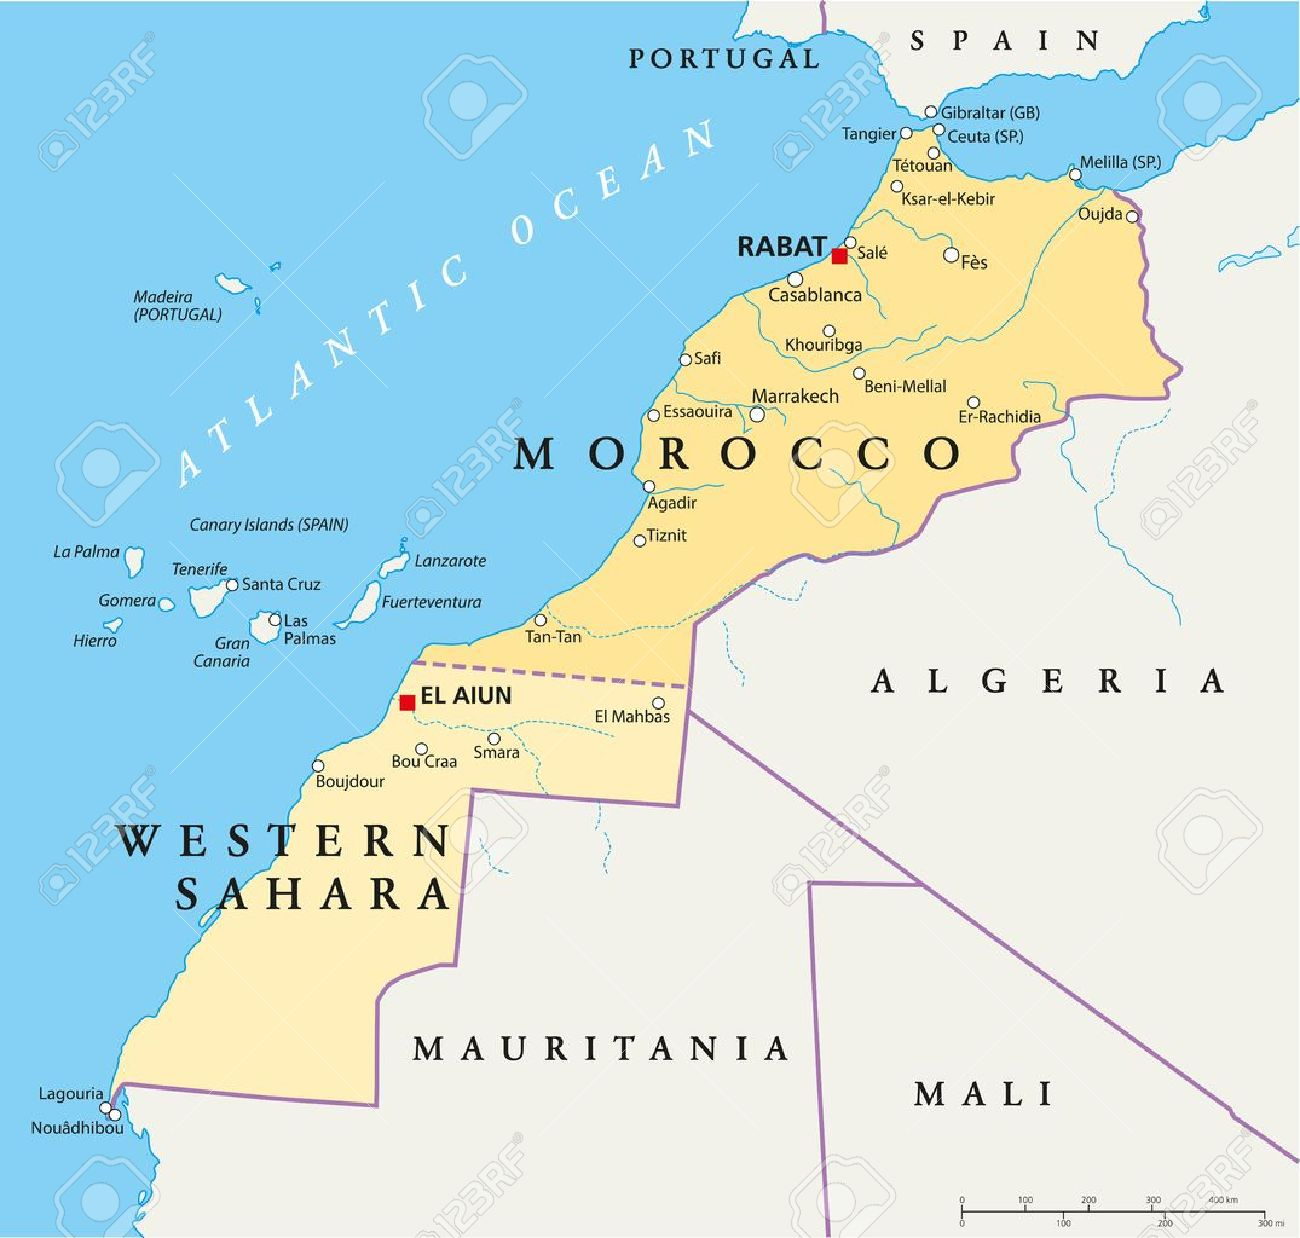 Map Of Spain Morocco.Morocco And Western Sahara Political Map